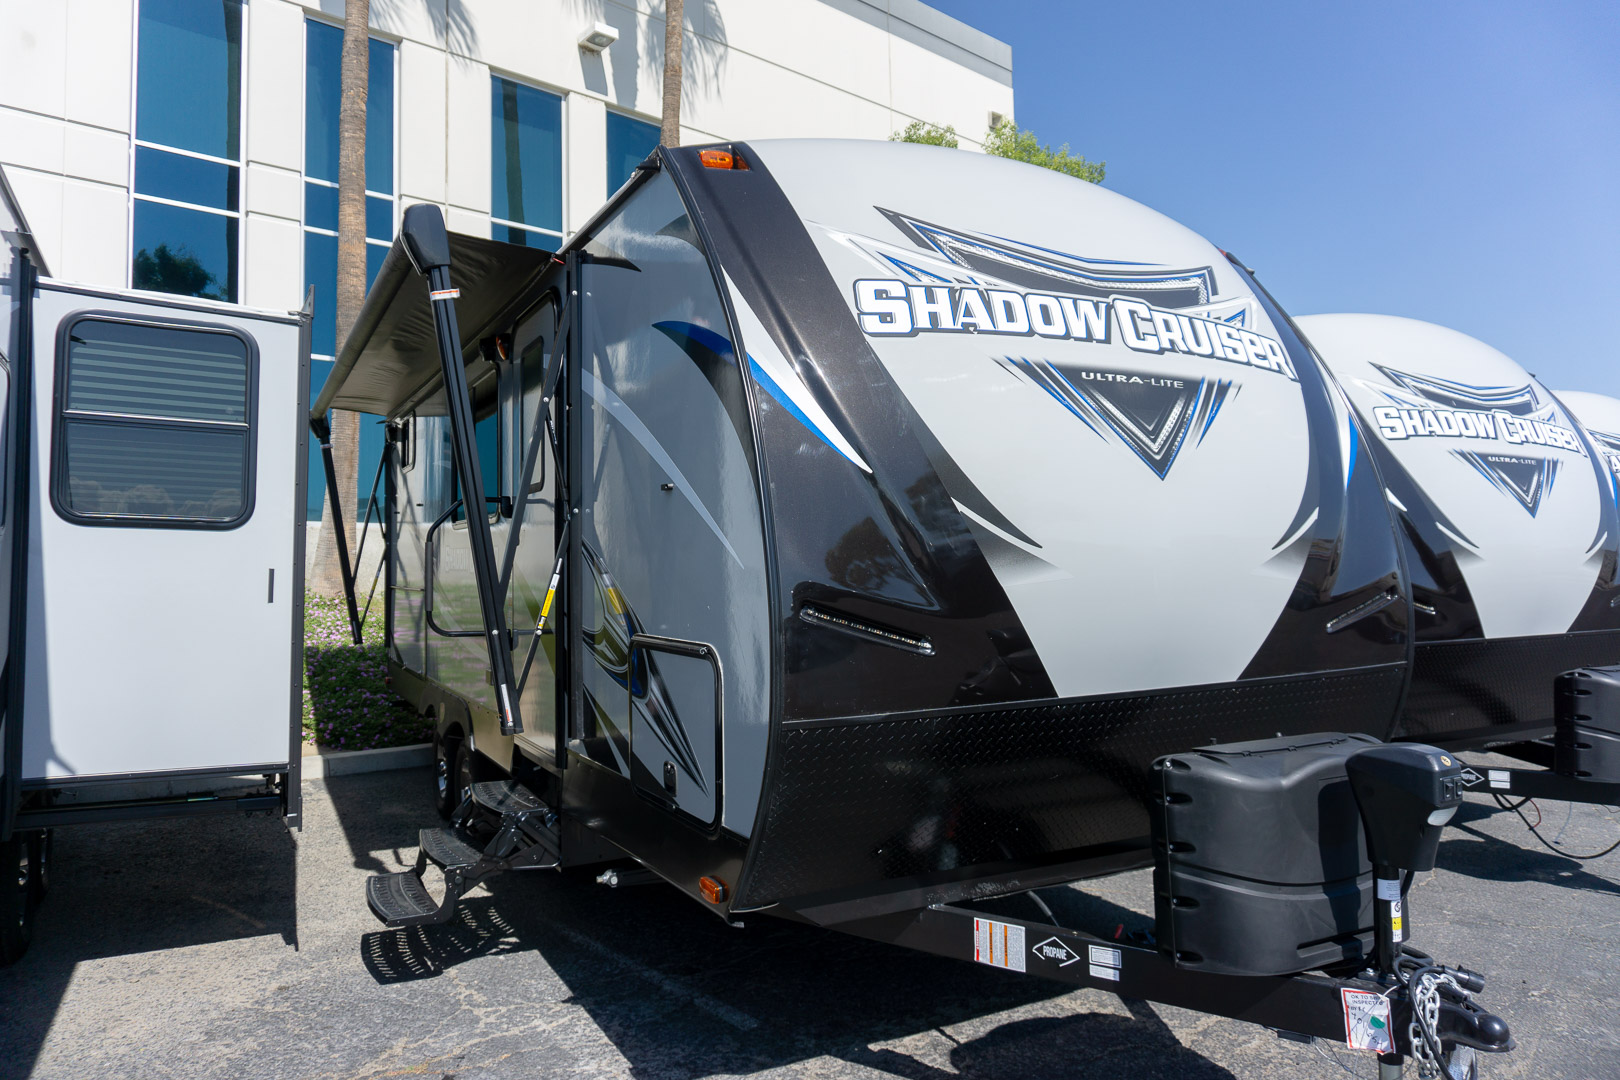 2019 CRUISER RV SHADOW CRUISER ULTRA LITE 220DBS